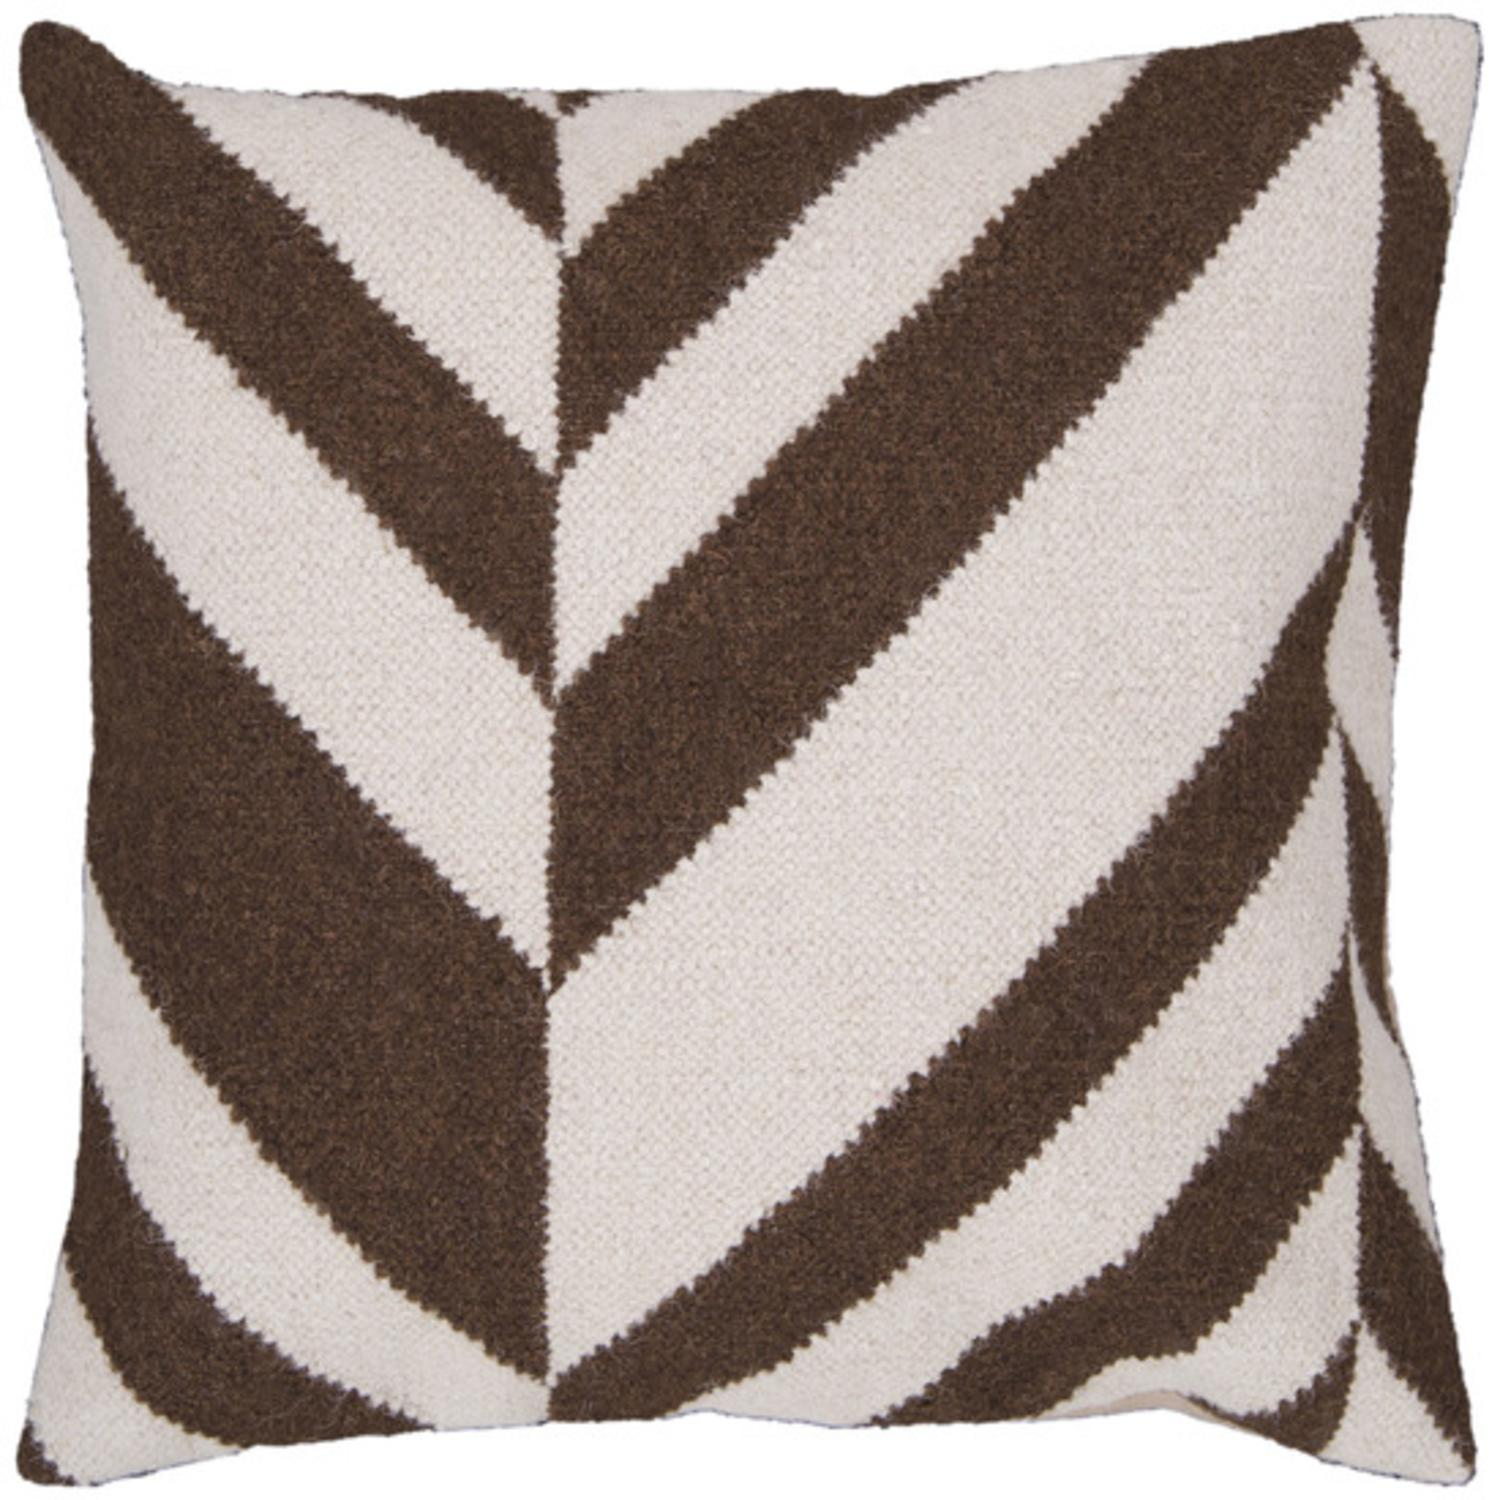 "18"" Coffee Bean Brown and Ivory Chevron Decorative Throw Pillow"